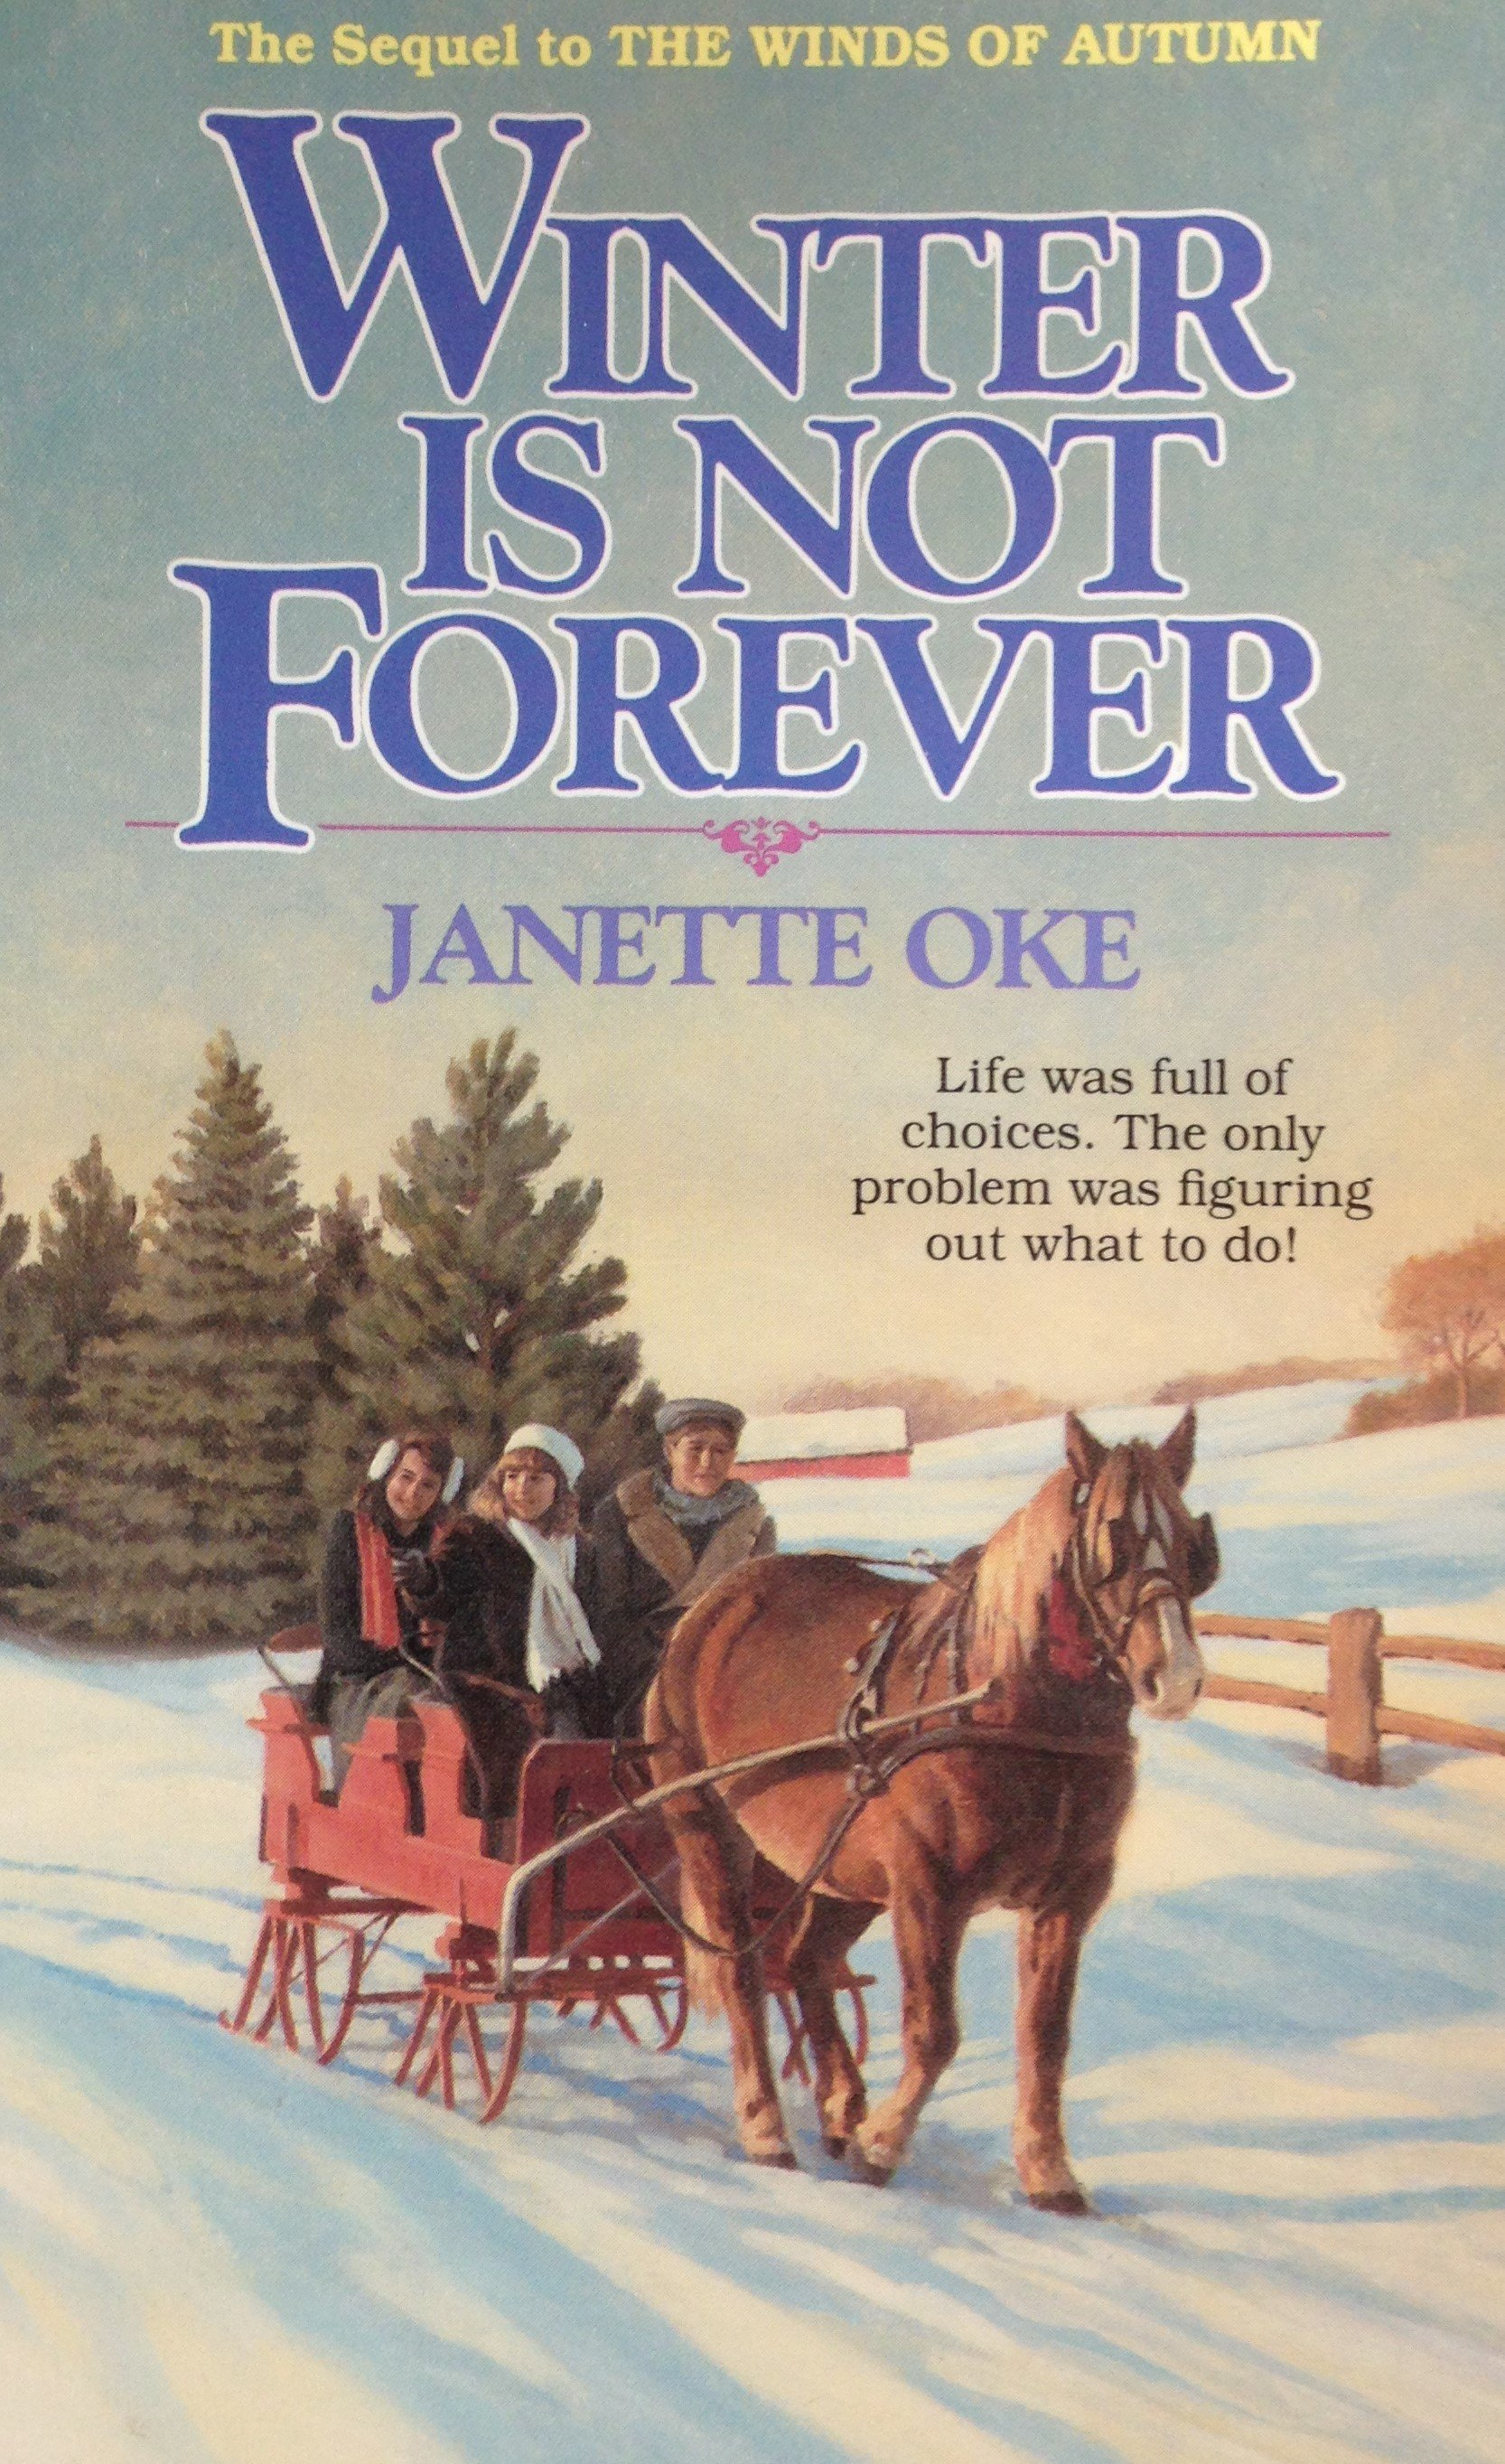 Winter Is Not Forever by Janette Oke 00125